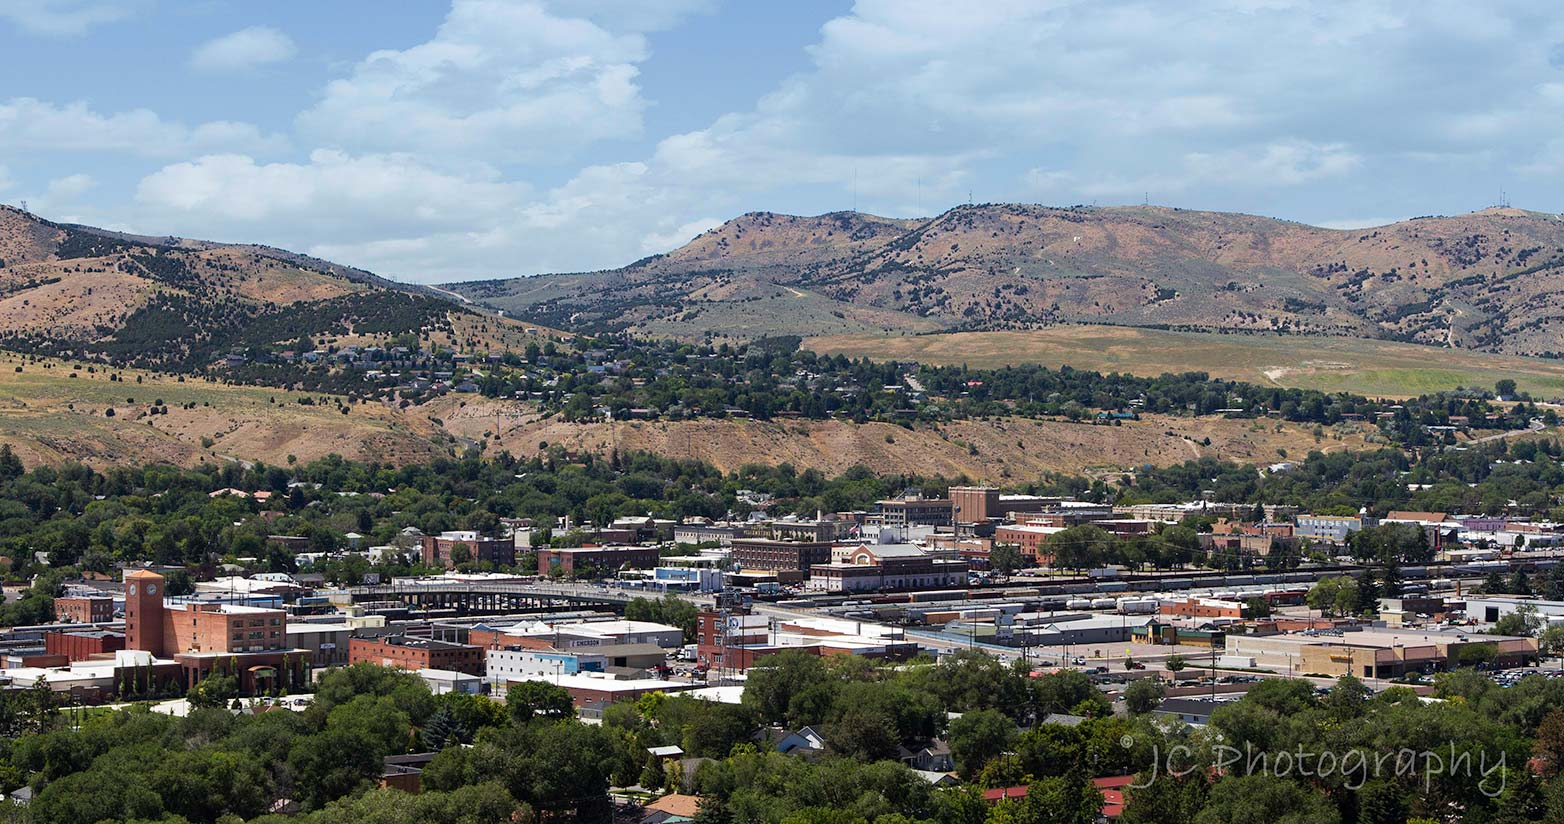 employment opportunities city of pocatello applicants are requested to use chrome or firefox our preferred browsers or internet explorer 11 or higher for optimal compatibility our online